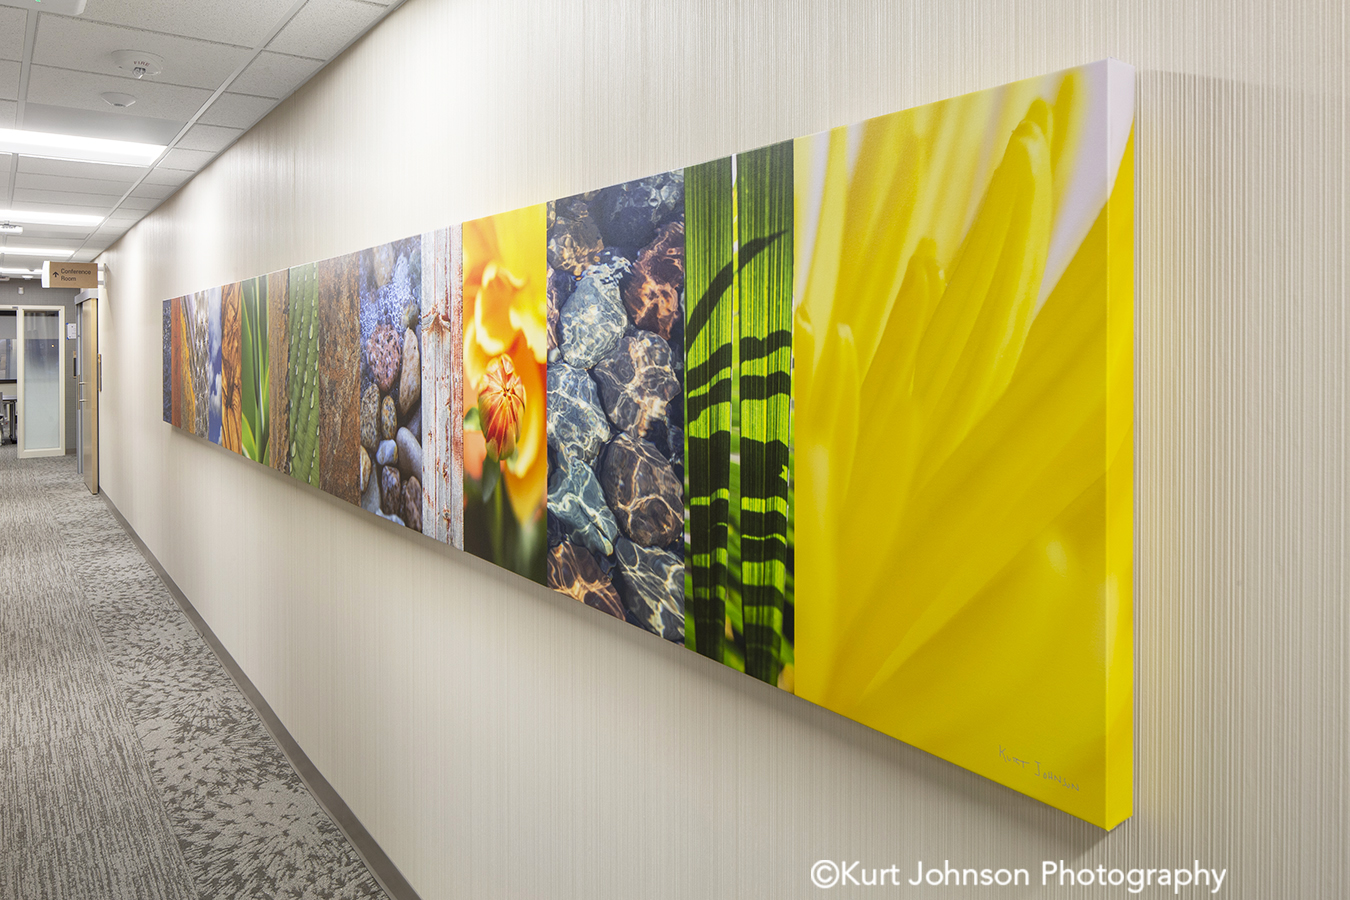 Allina Health art install wrapped canvas color slices flowers grasses healthcare installation design